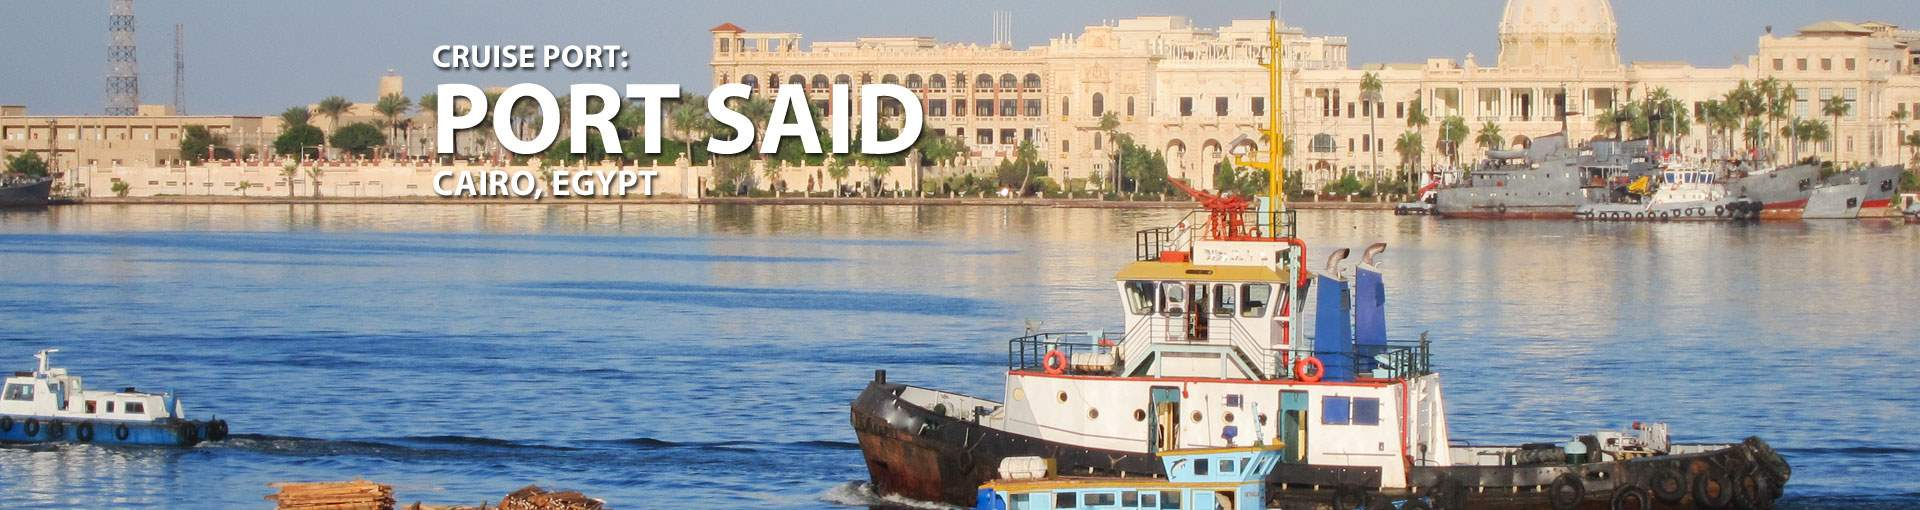 Port said cairo egypt cruise port 2018 and 2019 cruises to port cruises to port said cairo egypt publicscrutiny Gallery